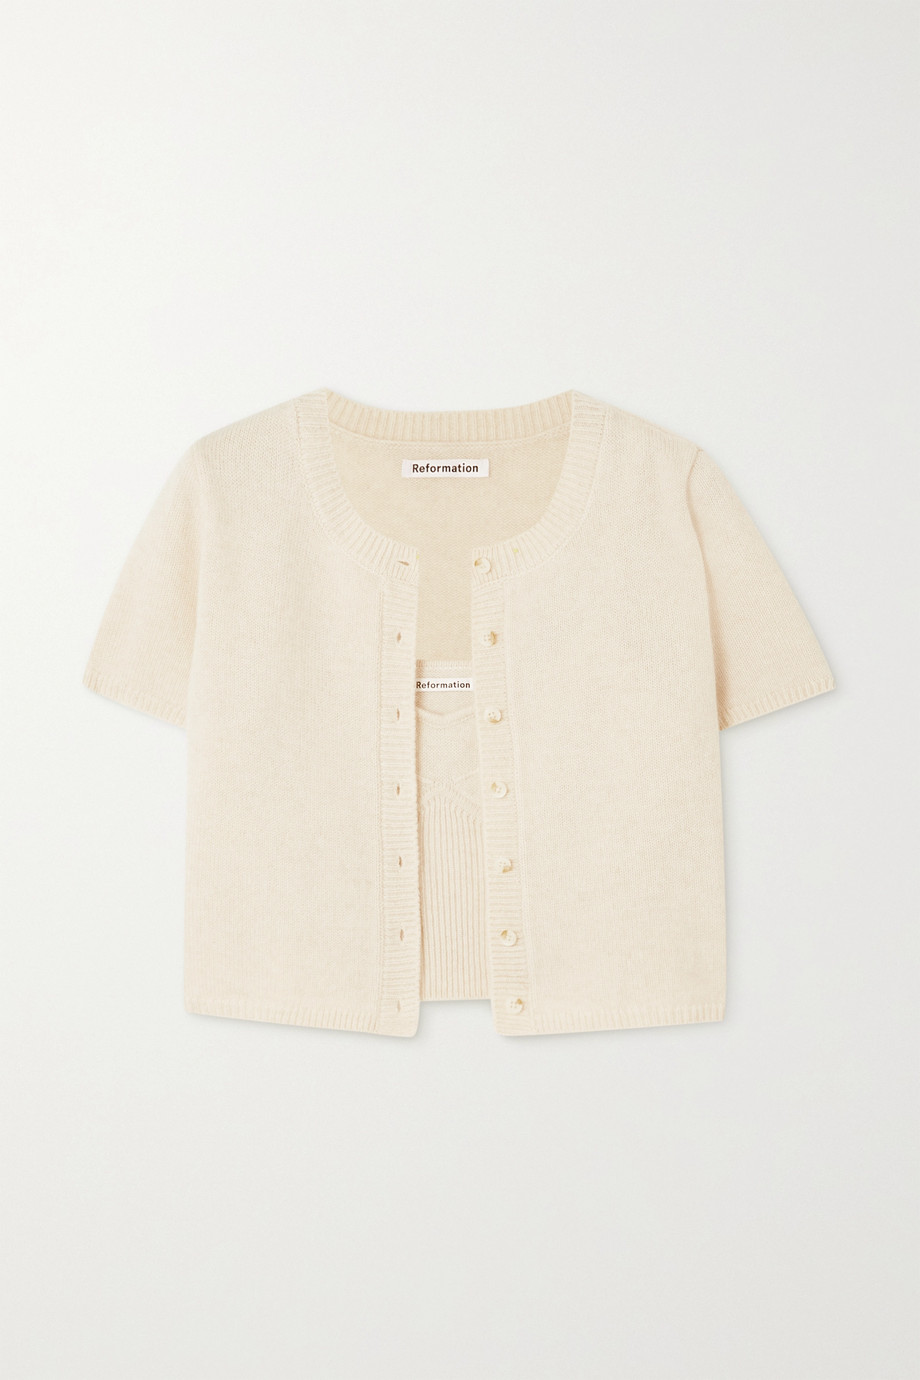 REFORMATION + NET SUSTAIN Gisela recycled cashmere-blend cardigan and camisole set